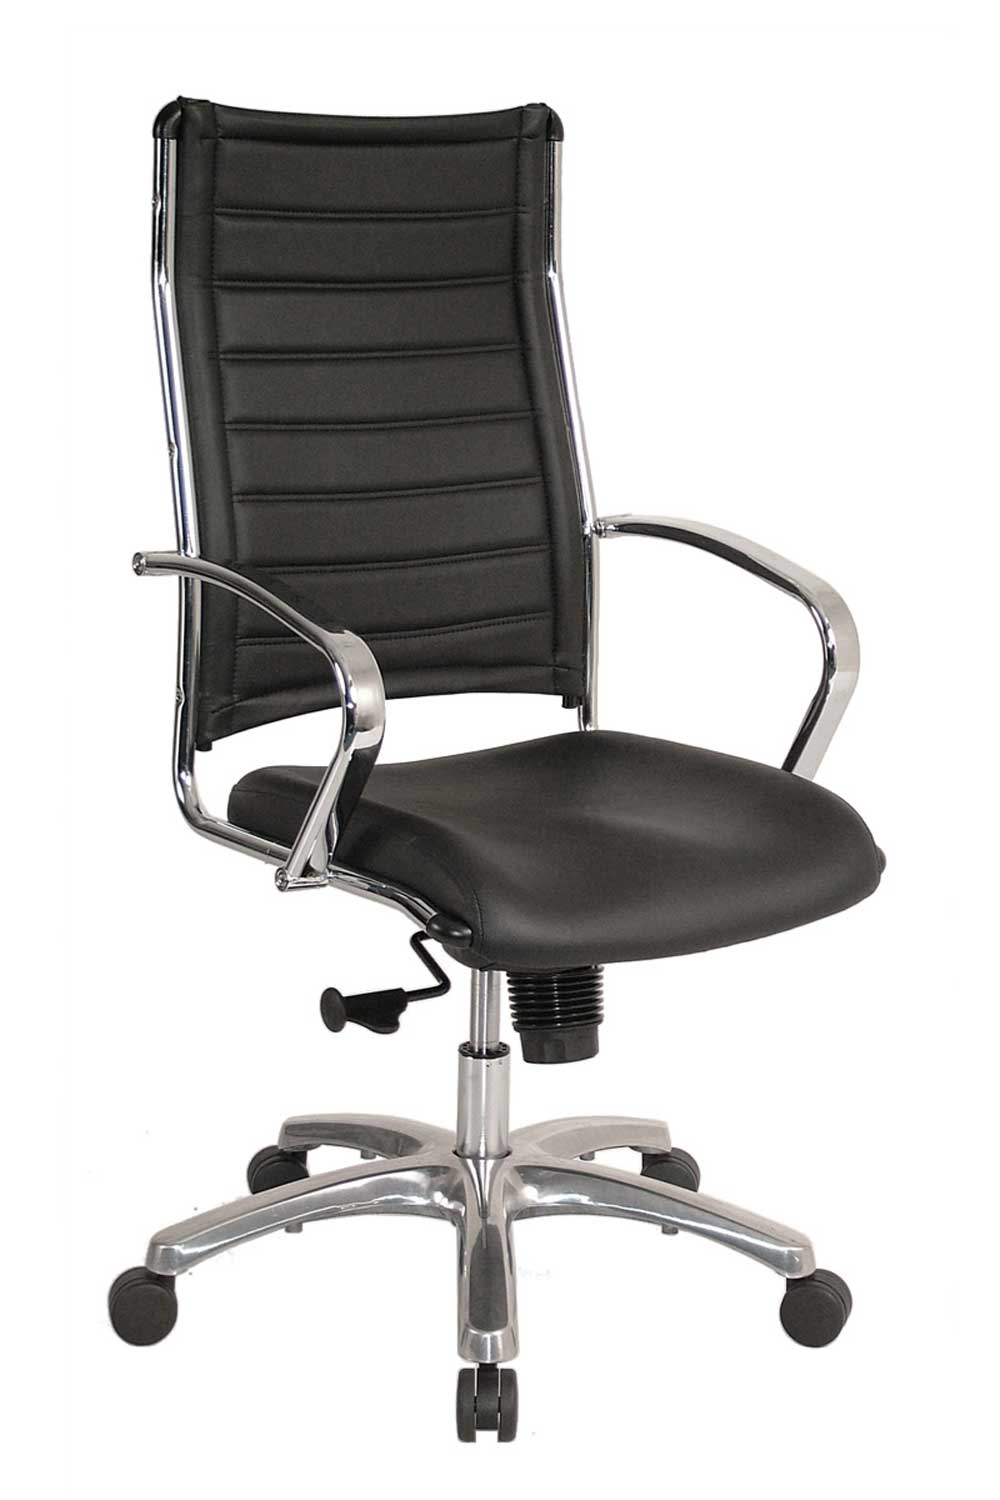 Eurotech High Back Vinyl Modern Office Seat